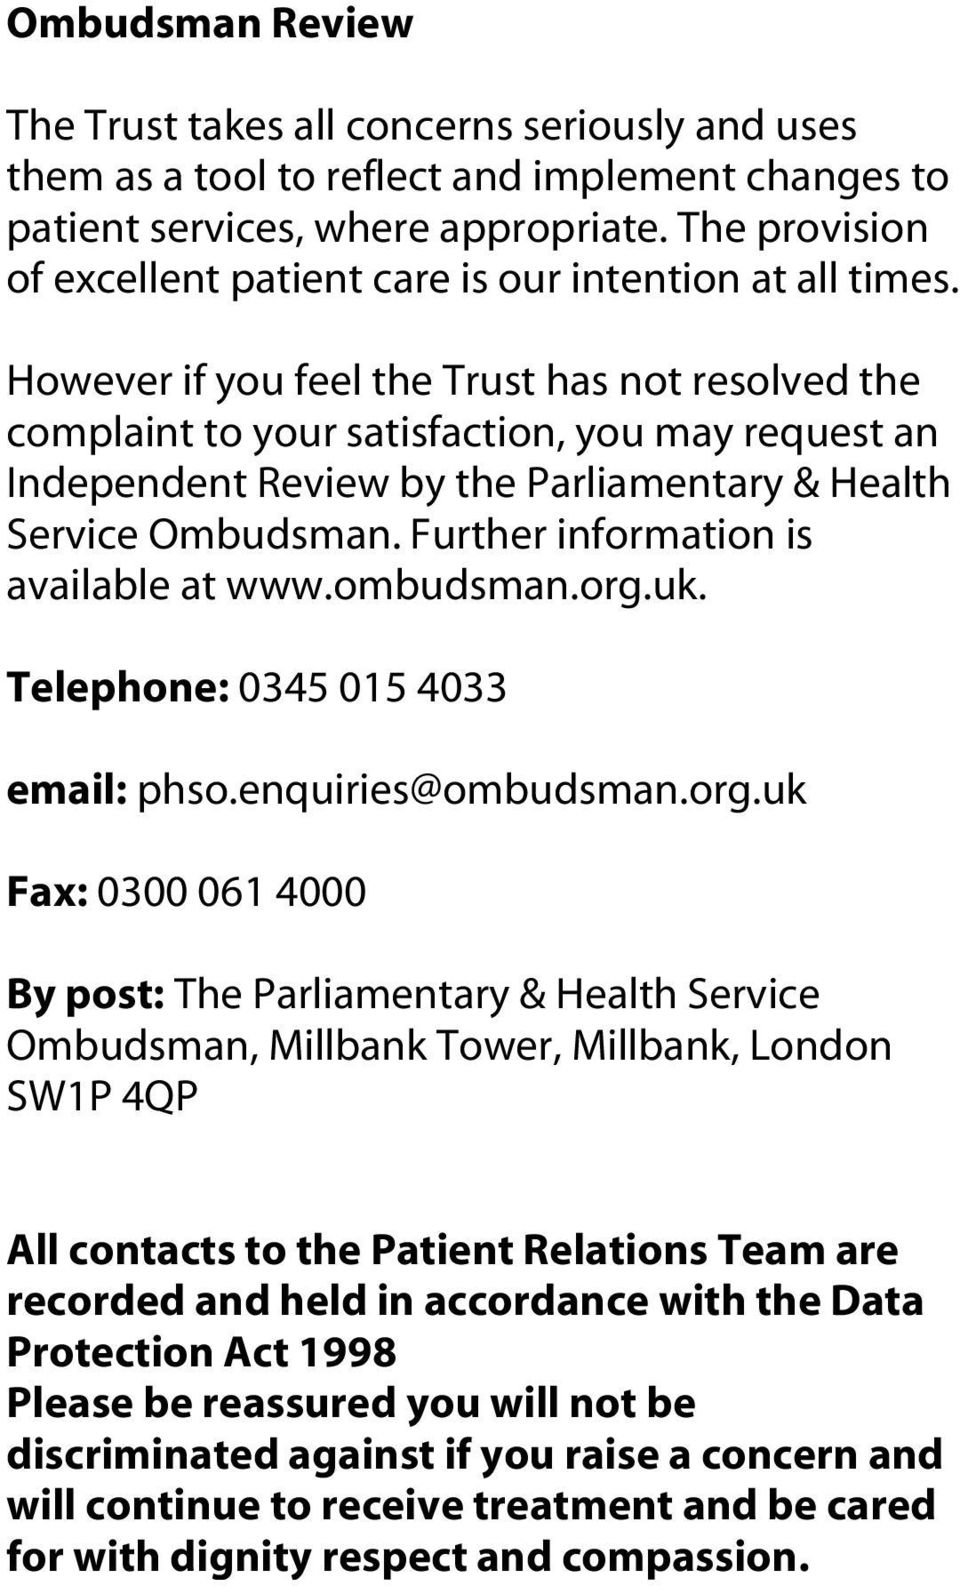 However if you feel the Trust has not resolved the complaint to your satisfaction, you may request an Independent Review by the Parliamentary & Health Service Ombudsman.